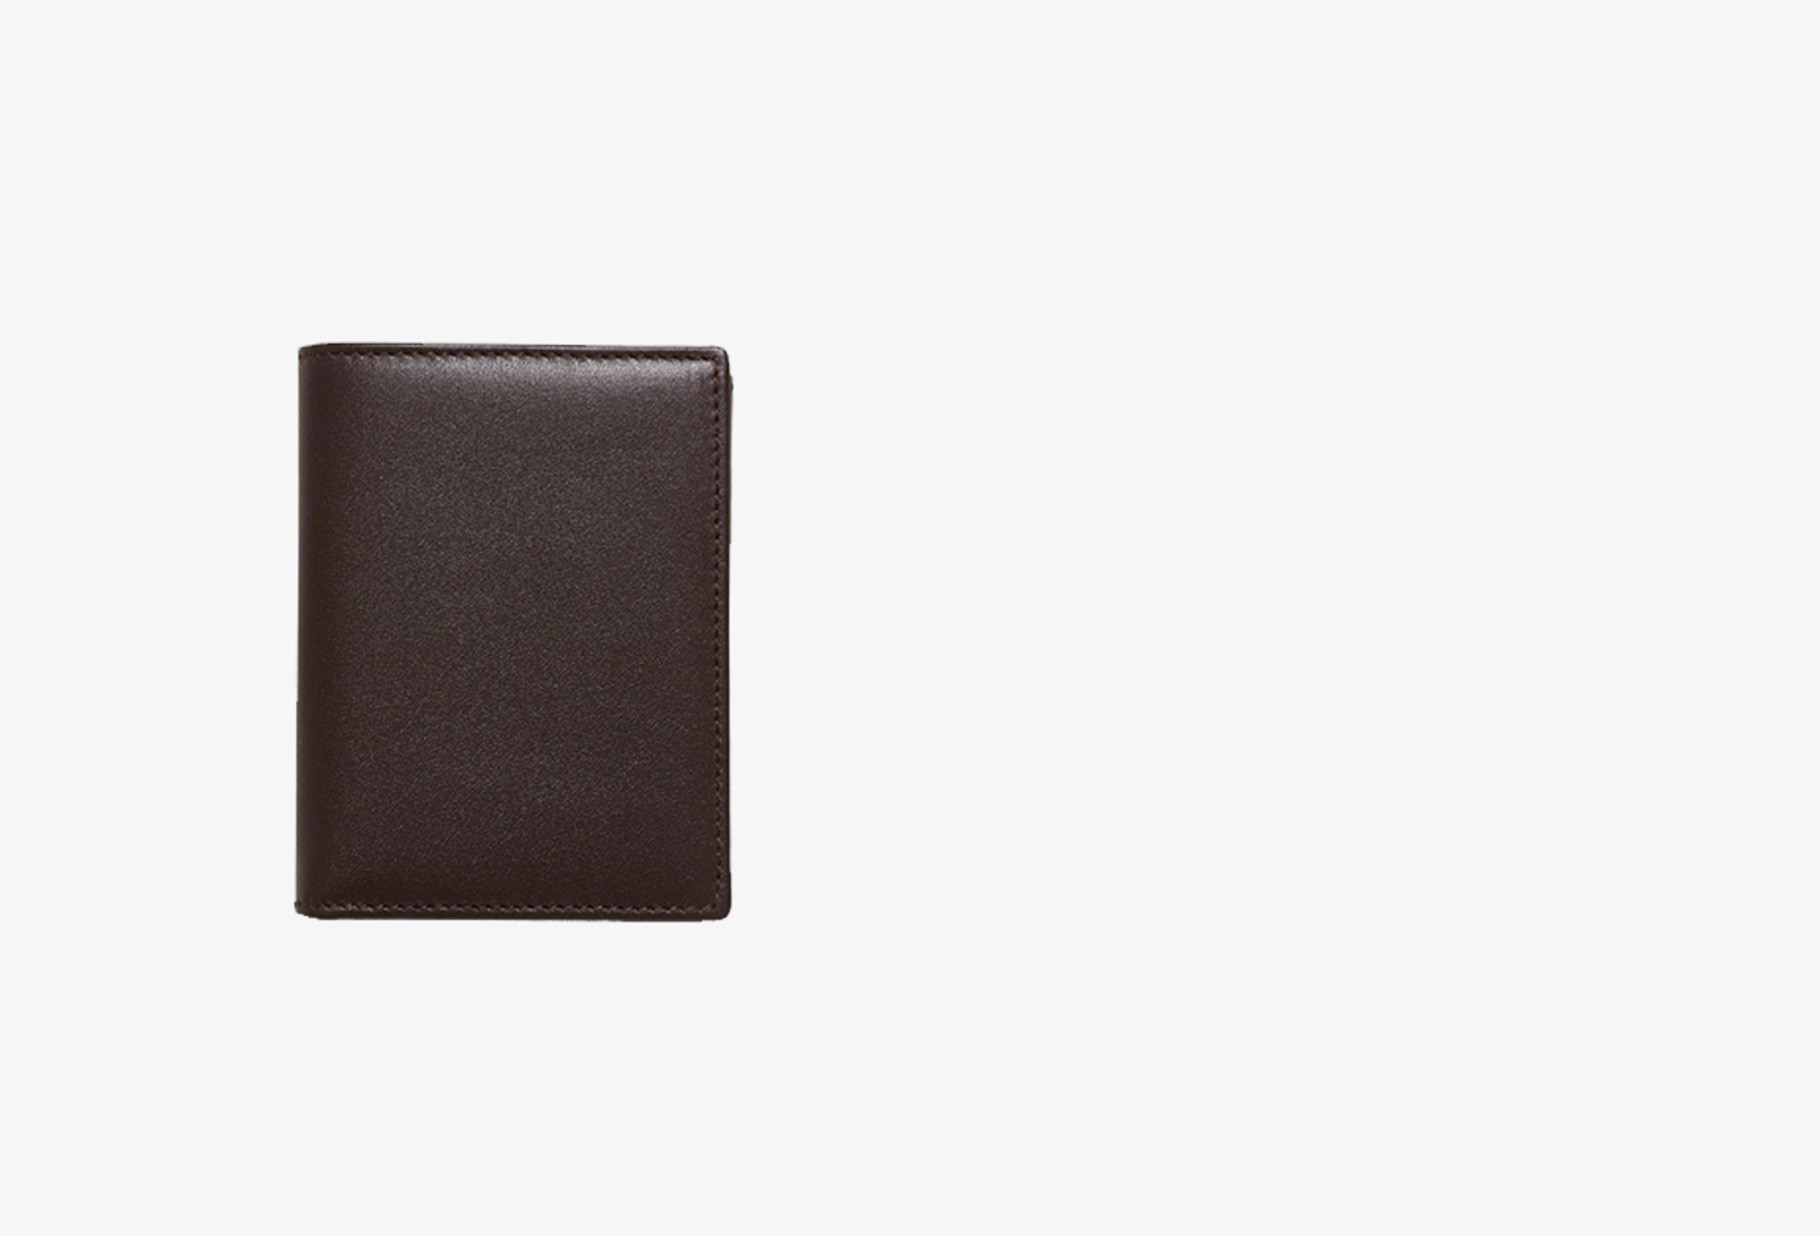 CDG WALLETS / Cdg classic leather sa0641 Brown